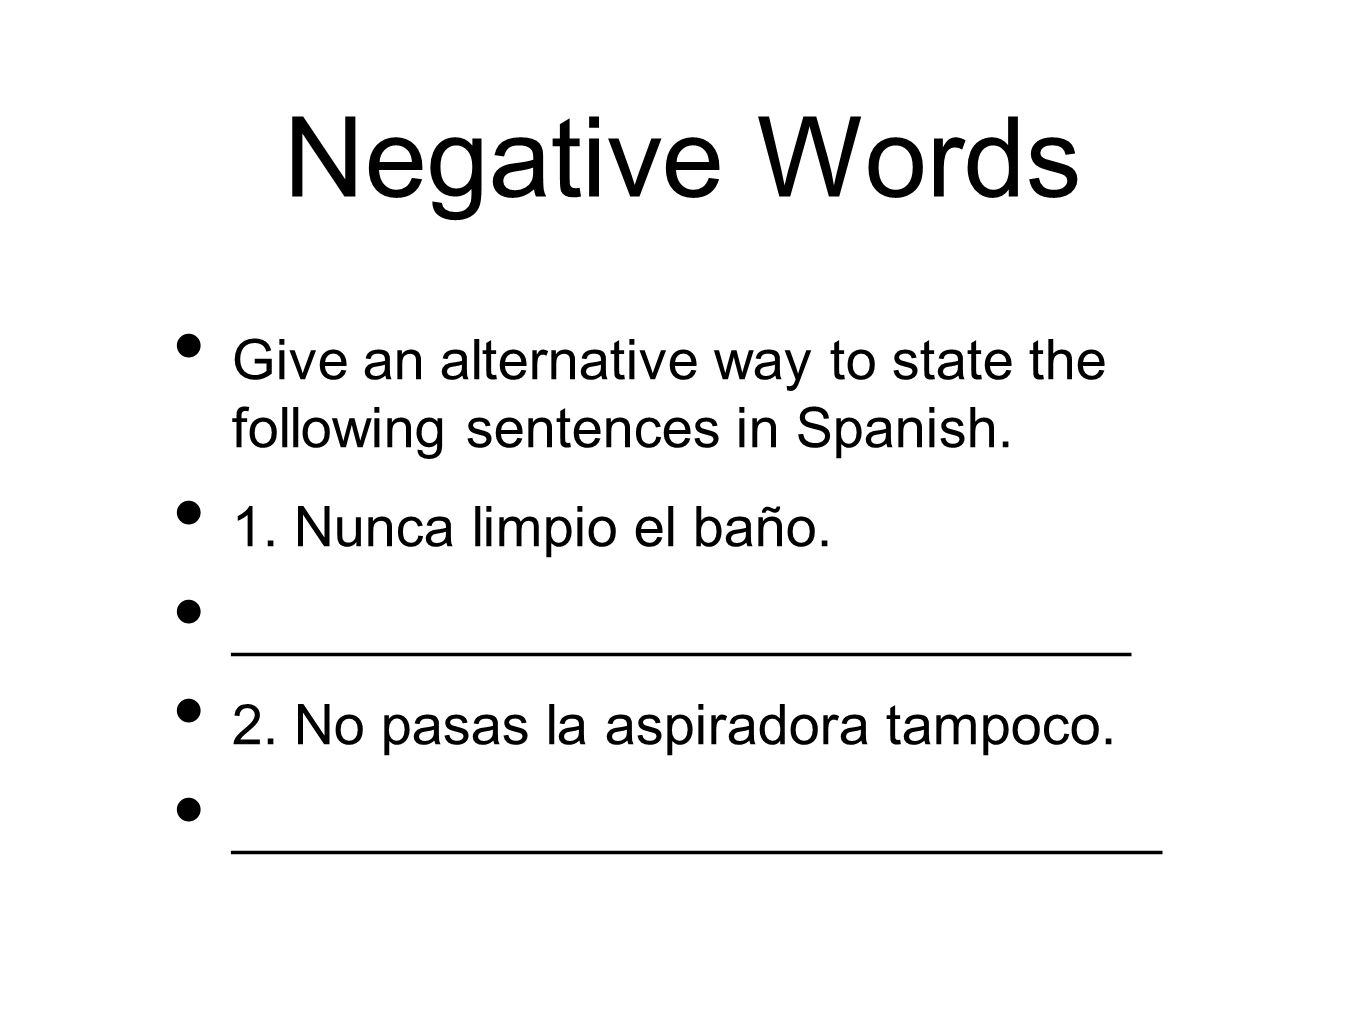 Fill in the blank with either nadie, nada, nunca or tampoco.